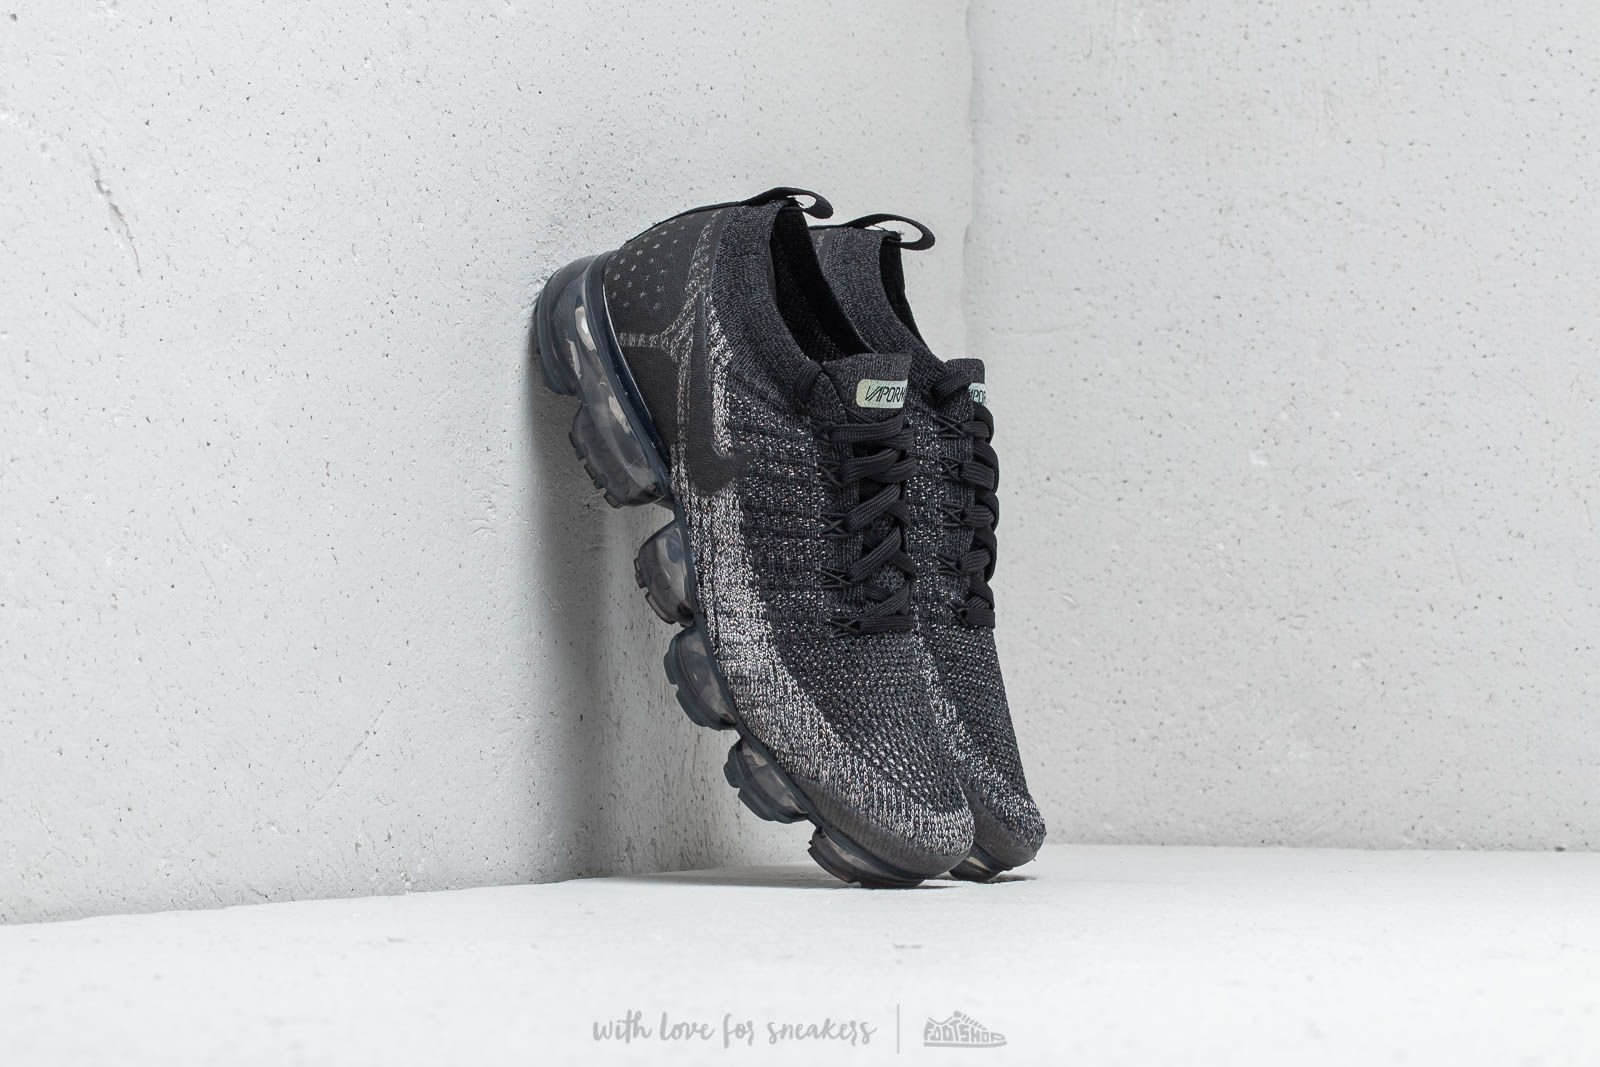 separation shoes d6b42 7ba26 Nike Air Vapormax Flyknit 2 Black/ Black-Dark Grey | Footshop